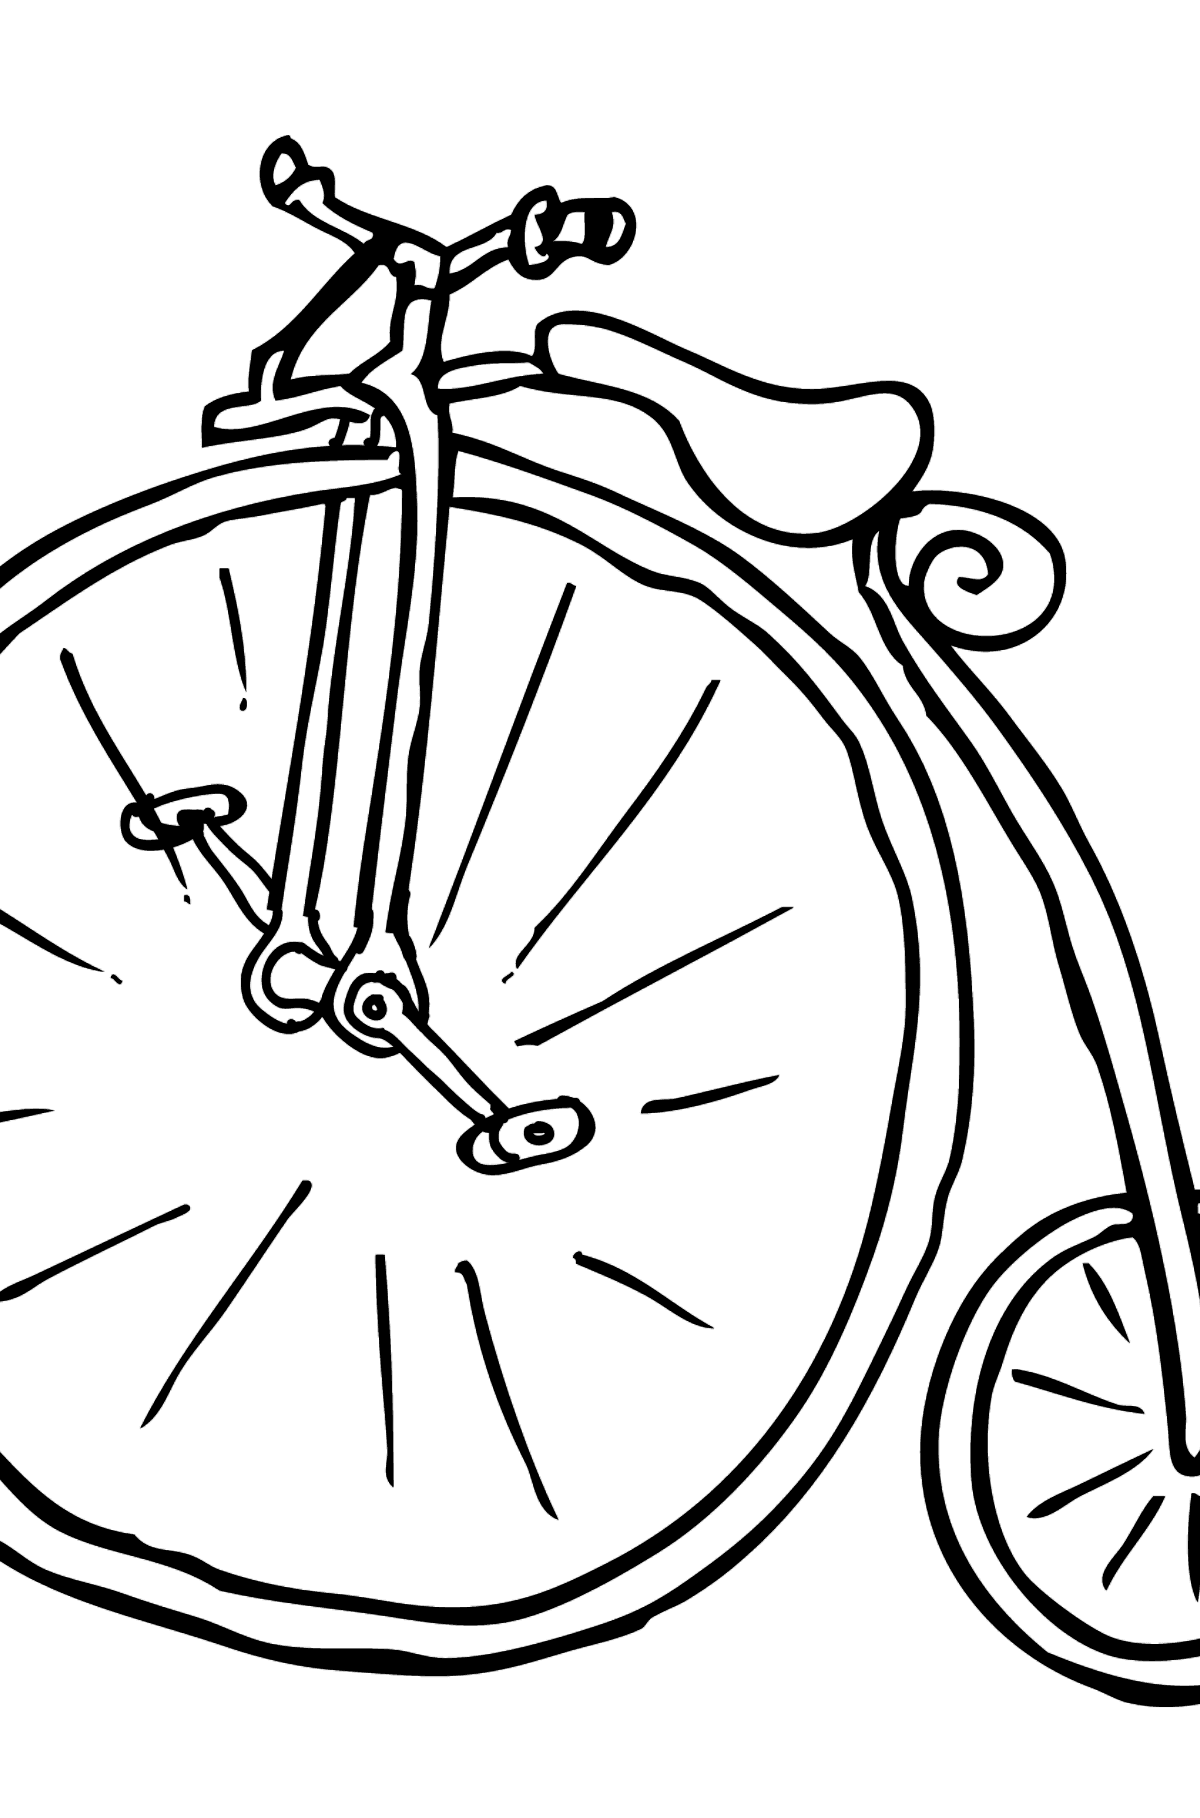 Coloring Page - A High-Wheel Cycle – Unicycle - Coloring Pages for Kids